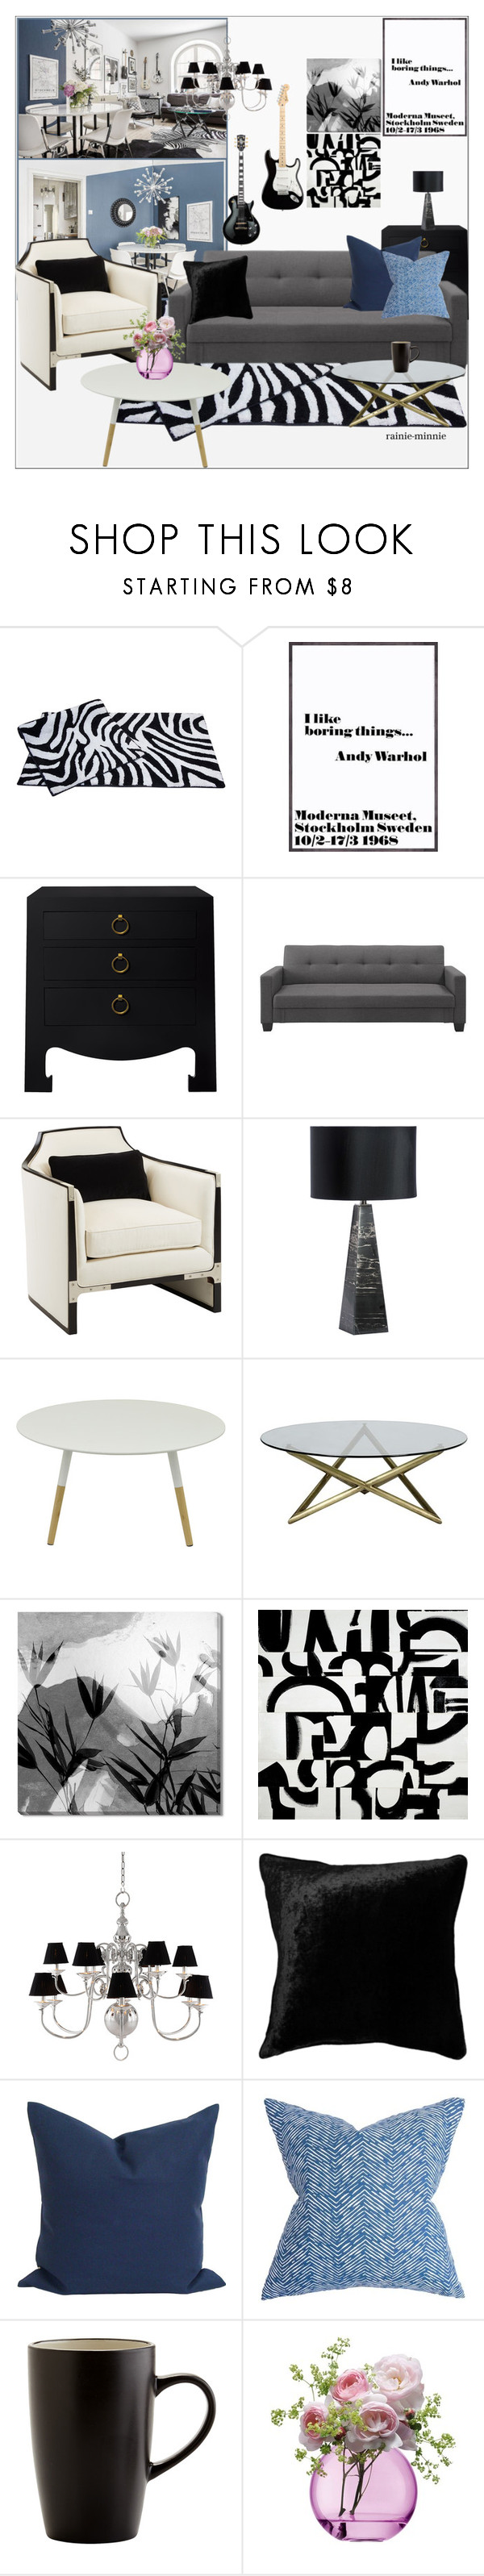 """""""Stockholm"""" by rainie-minnie ❤ liked on Polyvore featuring interior, interiors, interior design, home, home decor, interior decorating, Bungalow 5, Dorel, Dot & Bo and Eichholtz"""